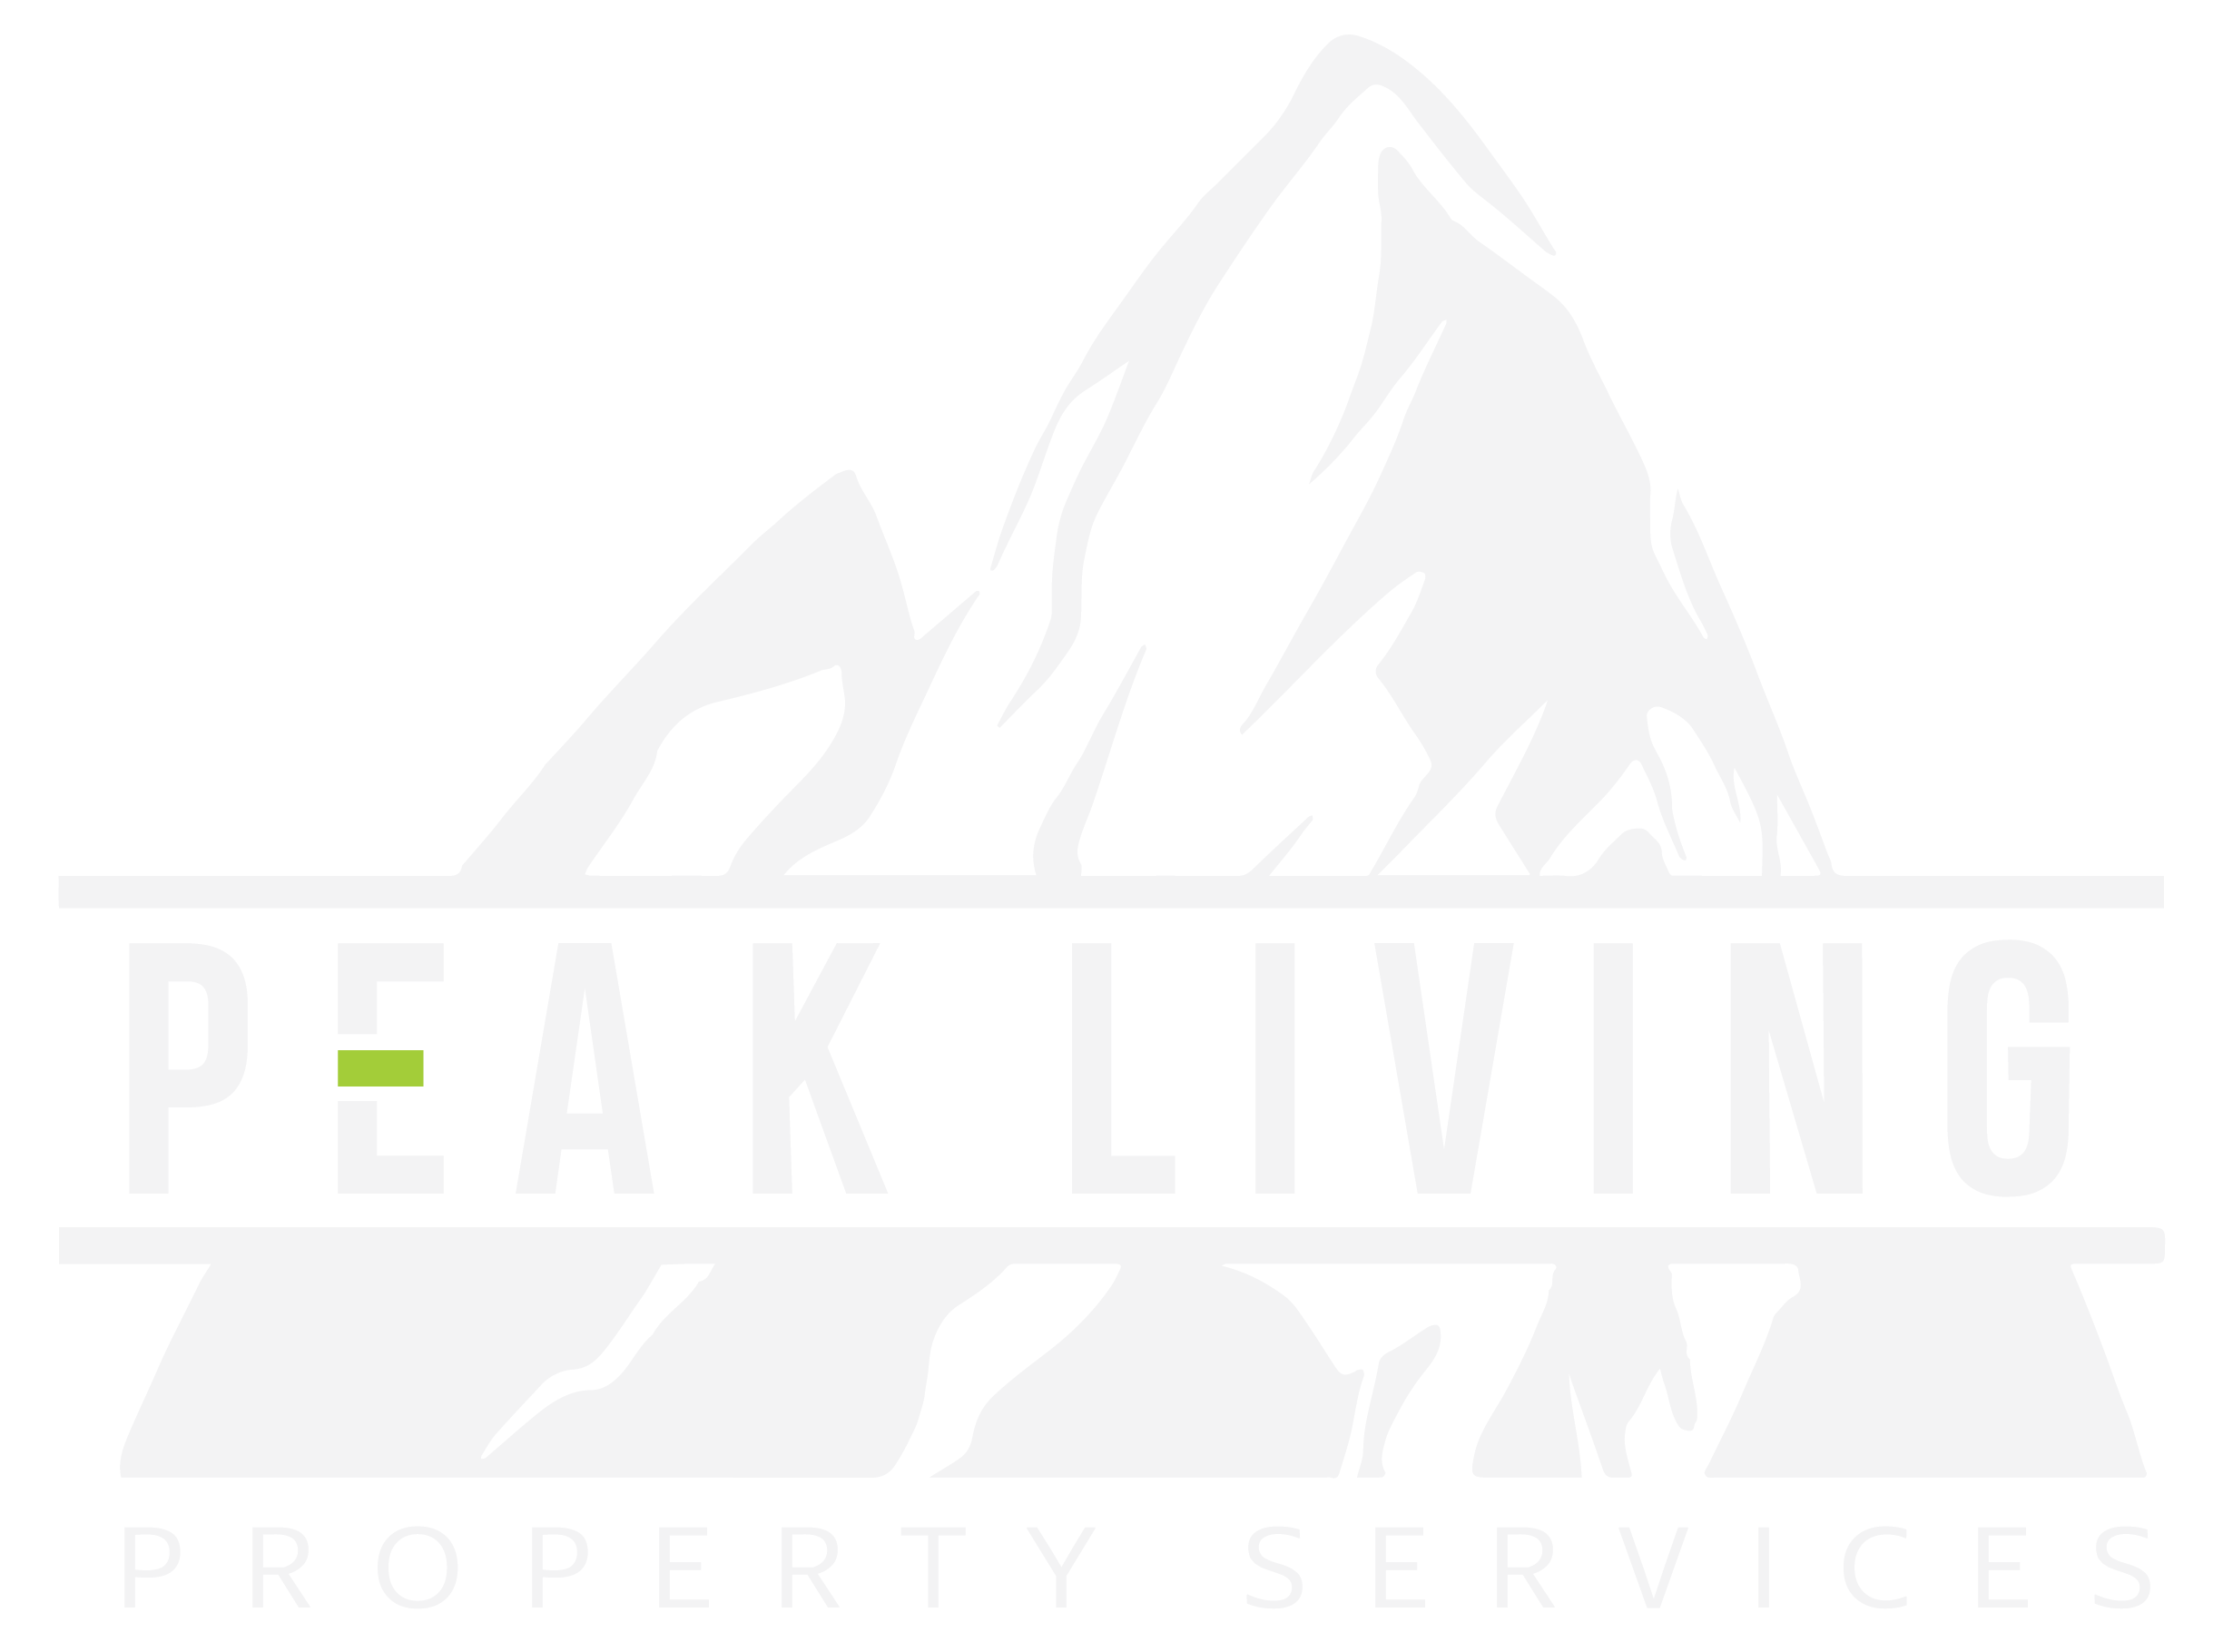 Peak Living Property Services